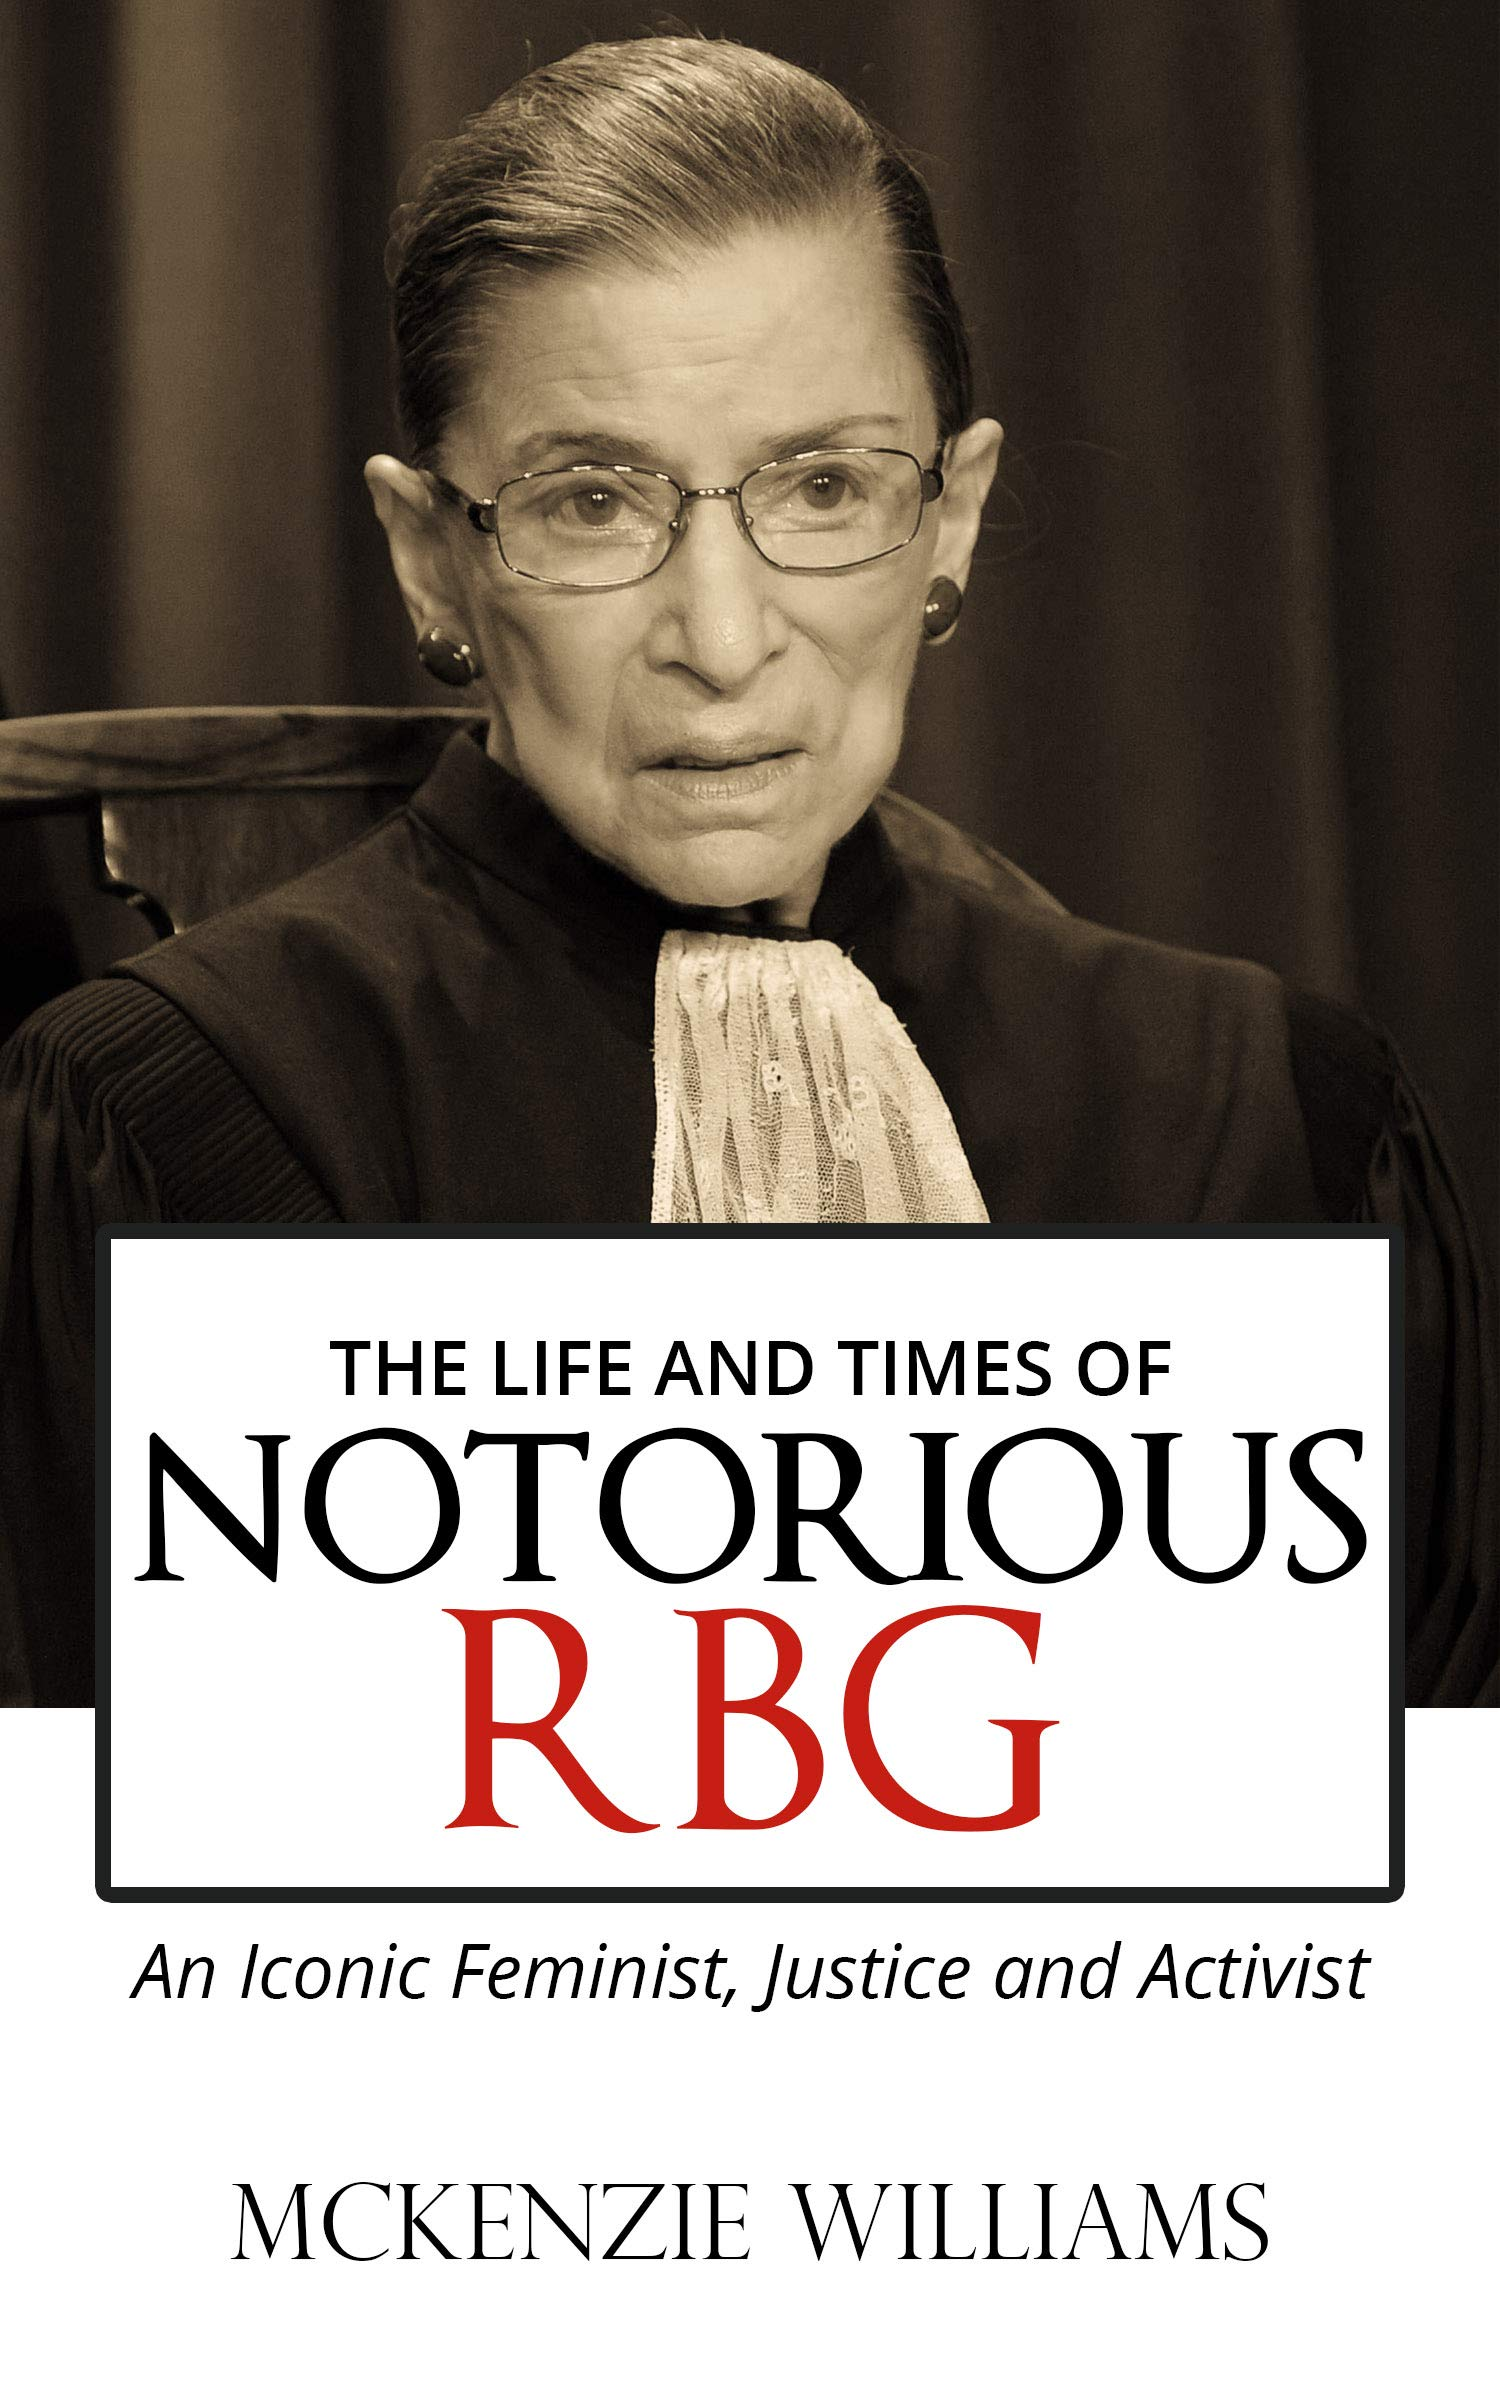 THE LIFE AND TIMES OF NOTORIOUS RBG: An Iconic Feminist, Justice and Activist